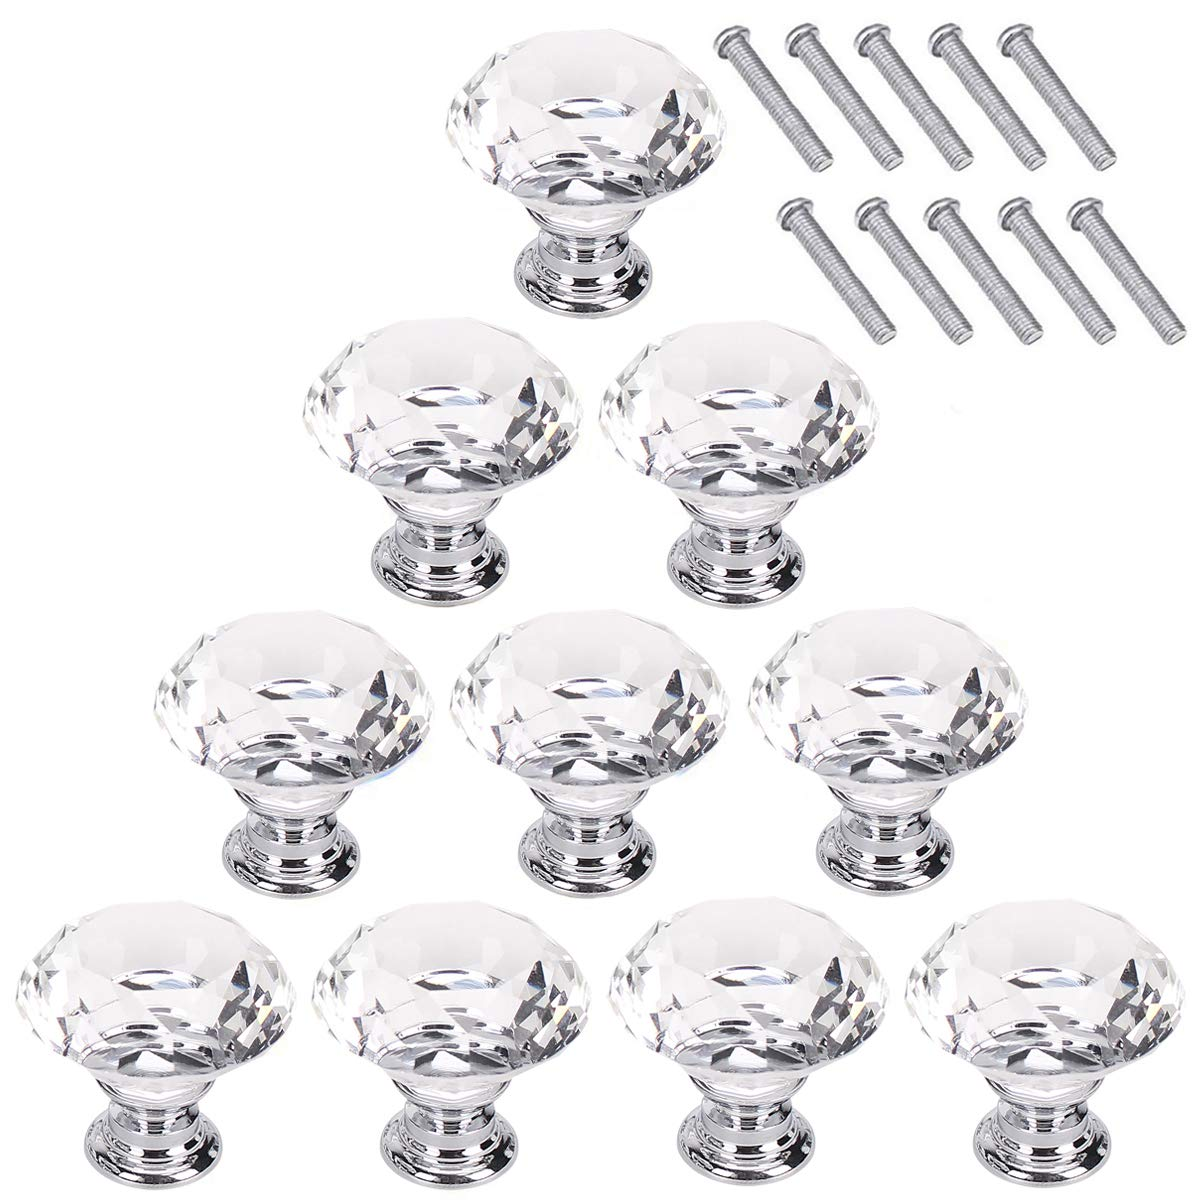 AKRover 10 Pcs Crystal Glass Cabinet Knobs 30mm Diamond Shape Drawer Kitchen Cabinets Dresser Cupboard Wardrobe Pulls Handles (Clear)